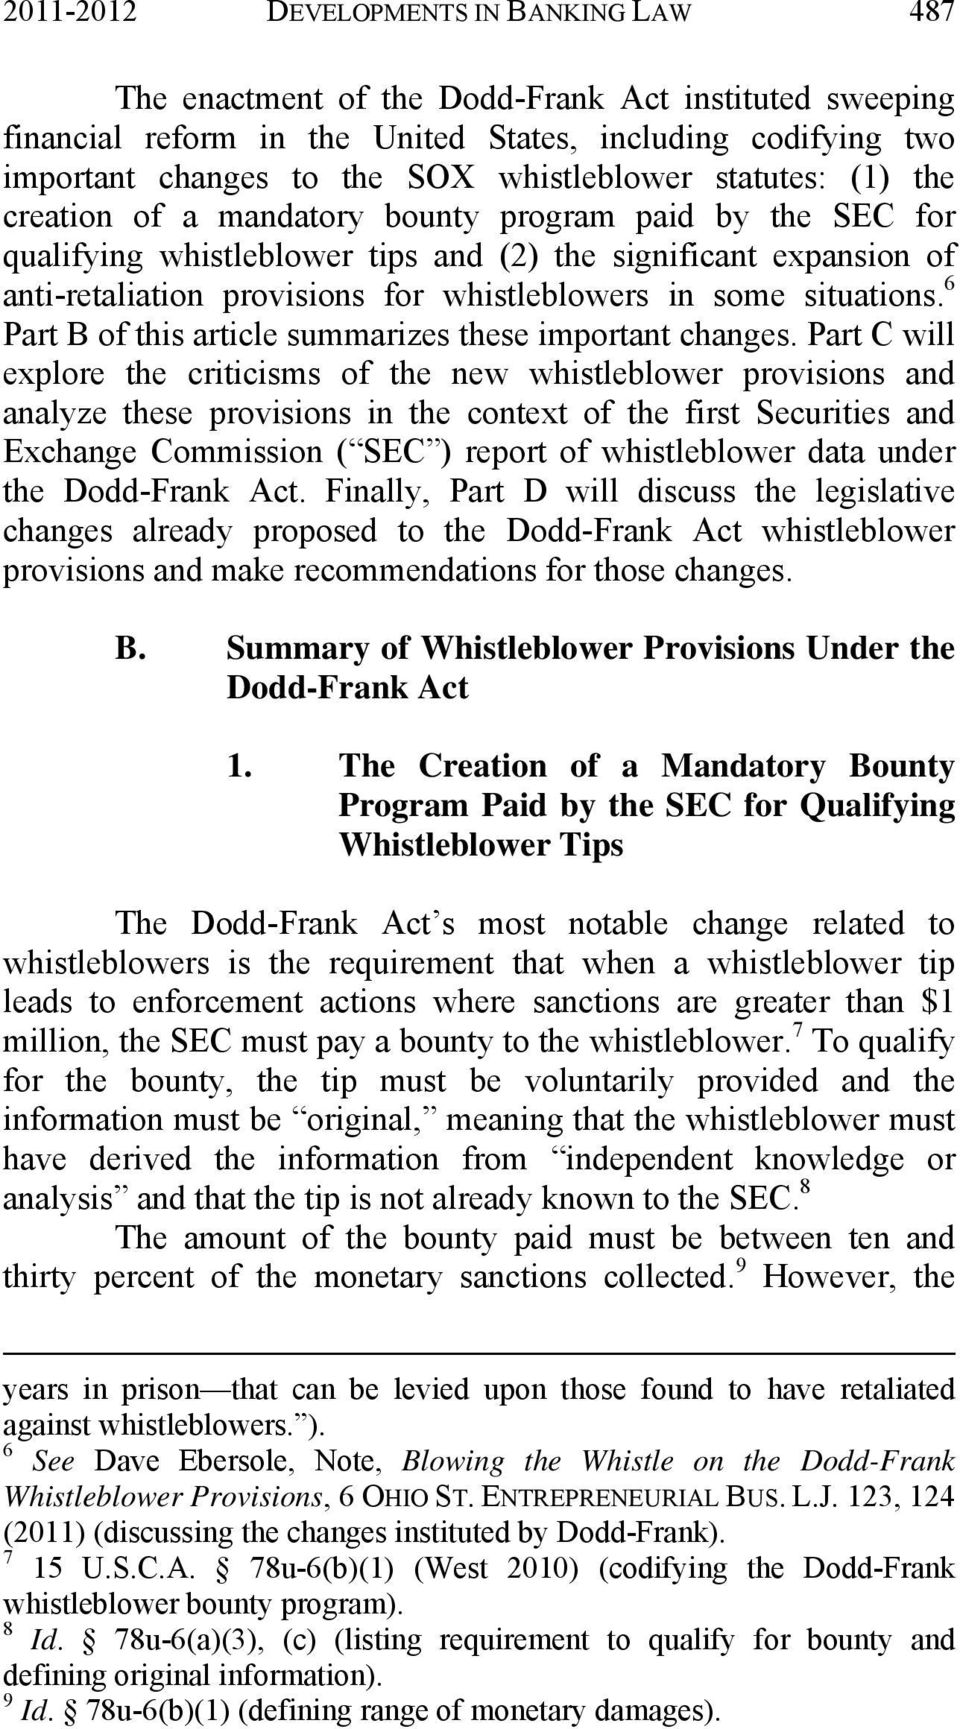 Whistleblower Provisions of the Dodd-Frank Act - PDF